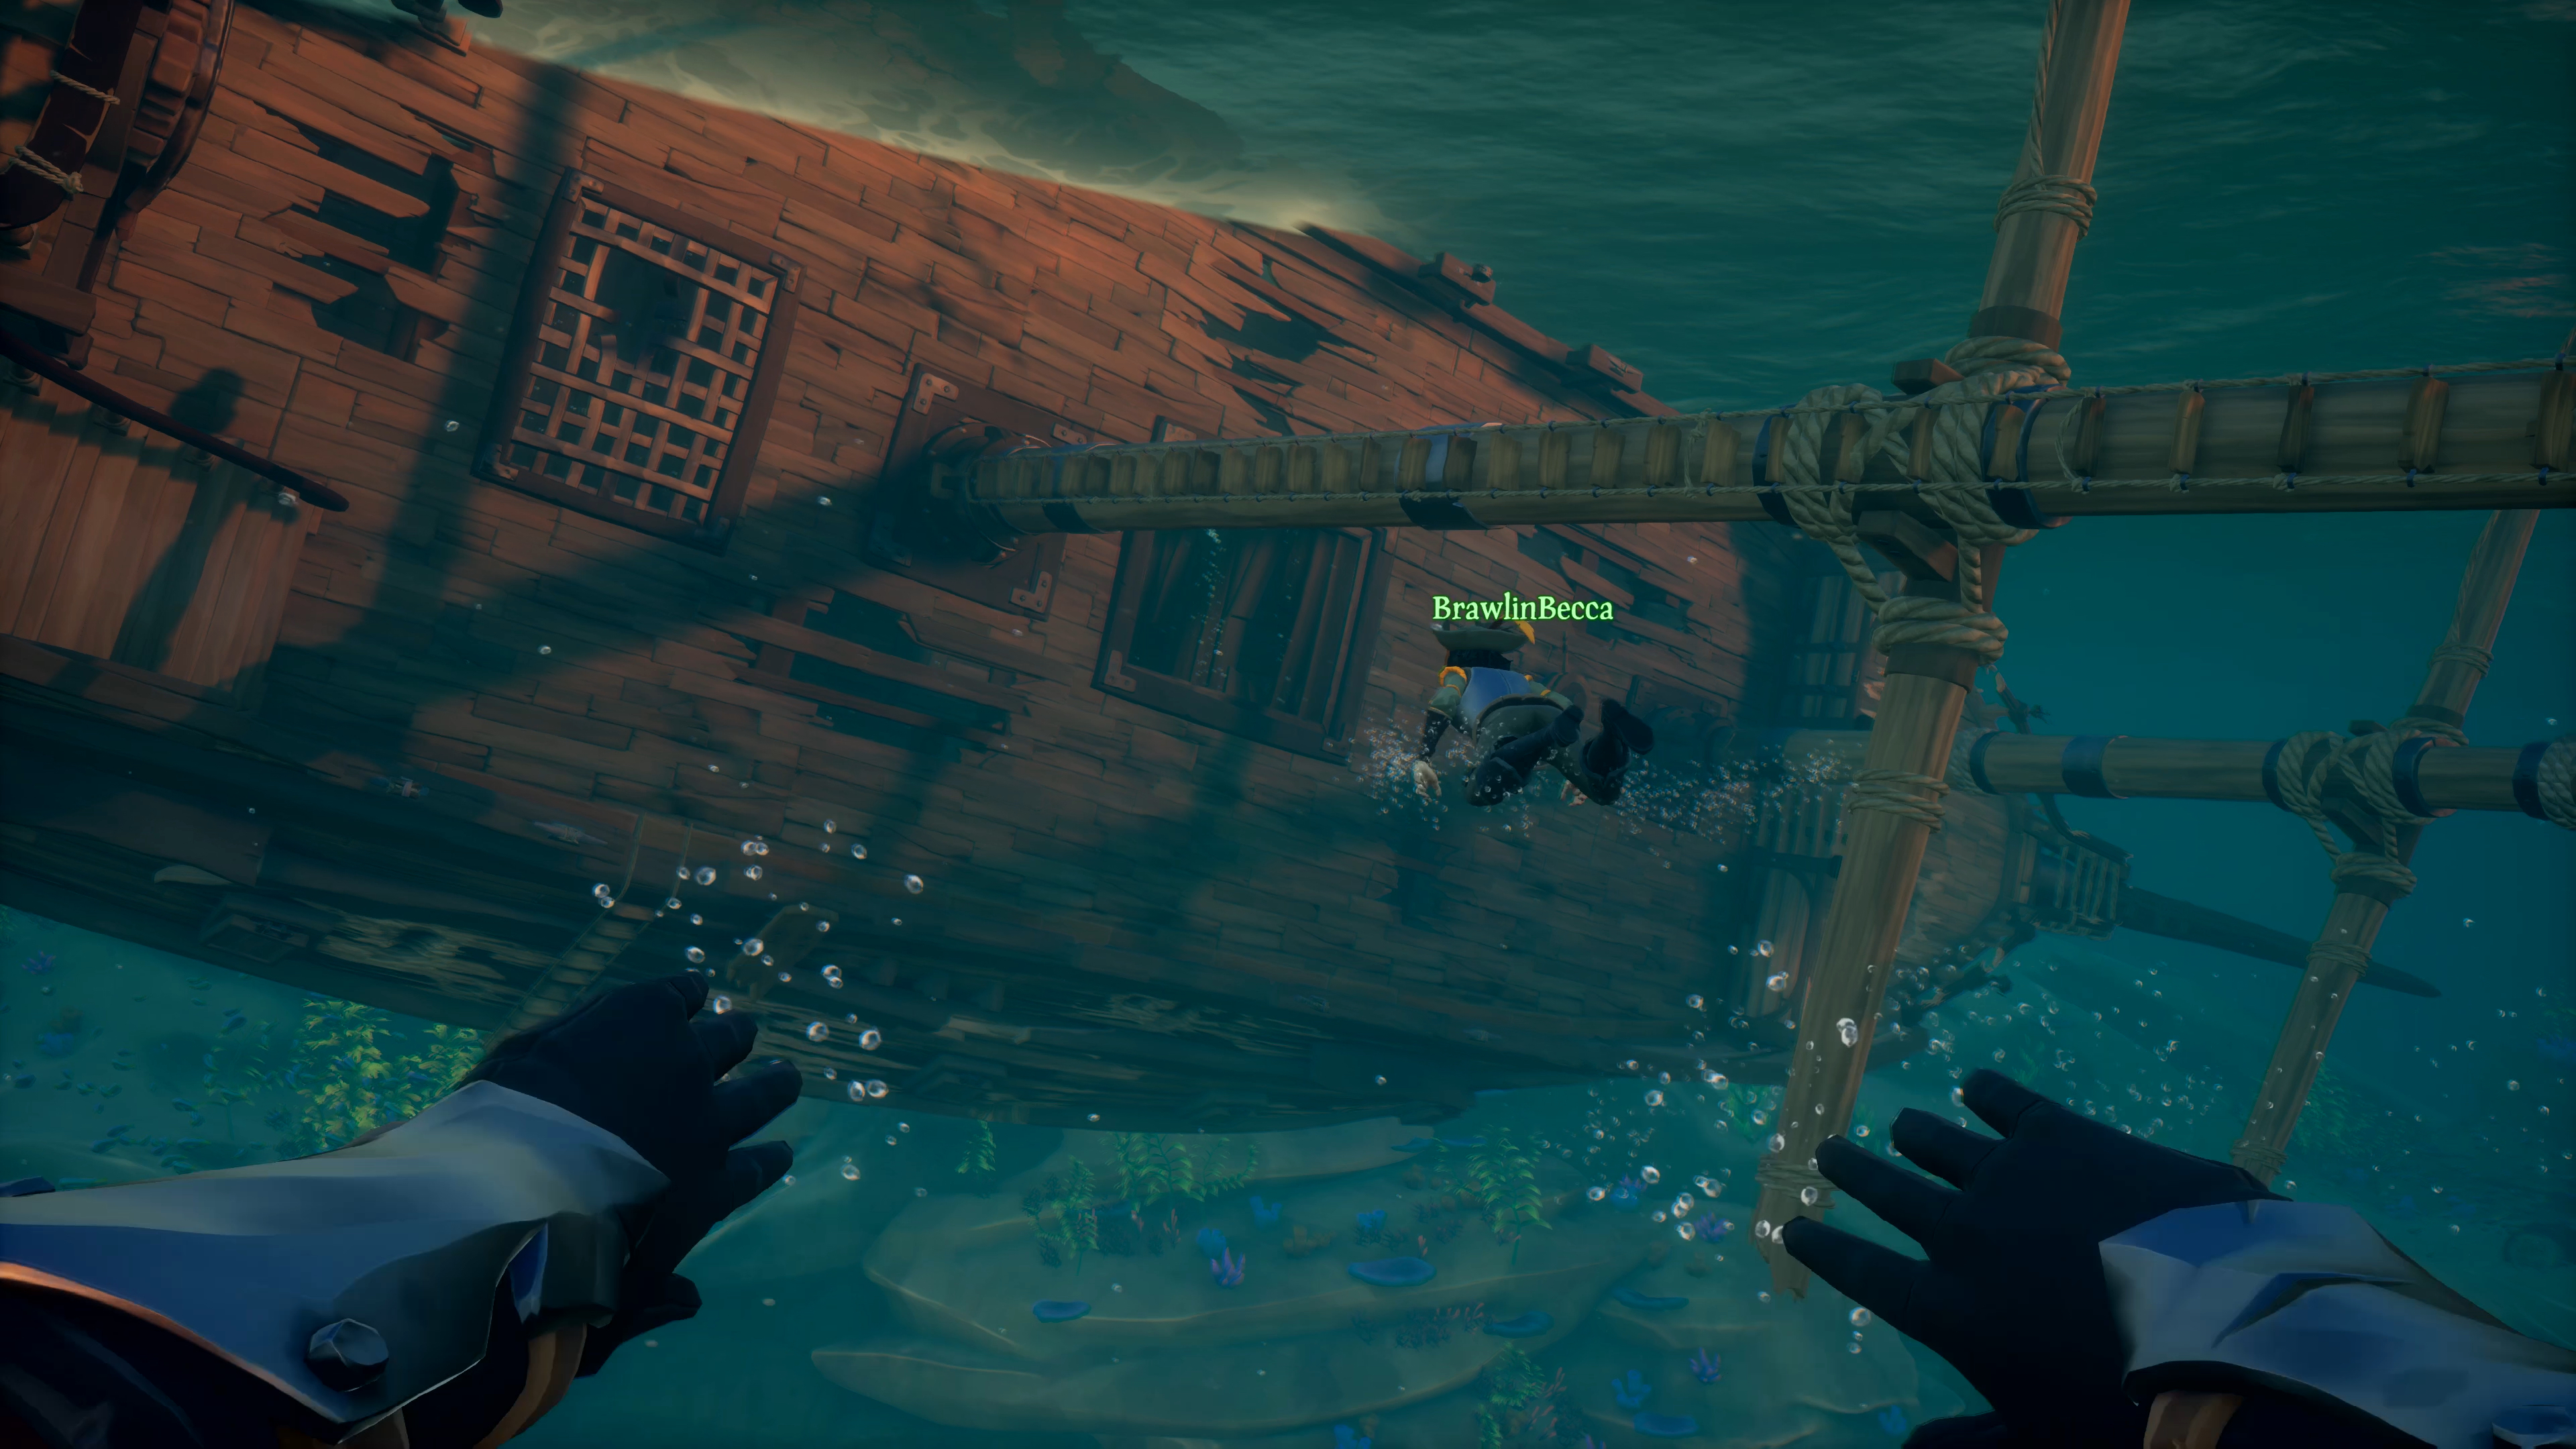 Sea of Thieves closed beta extended through January 31 after choppy